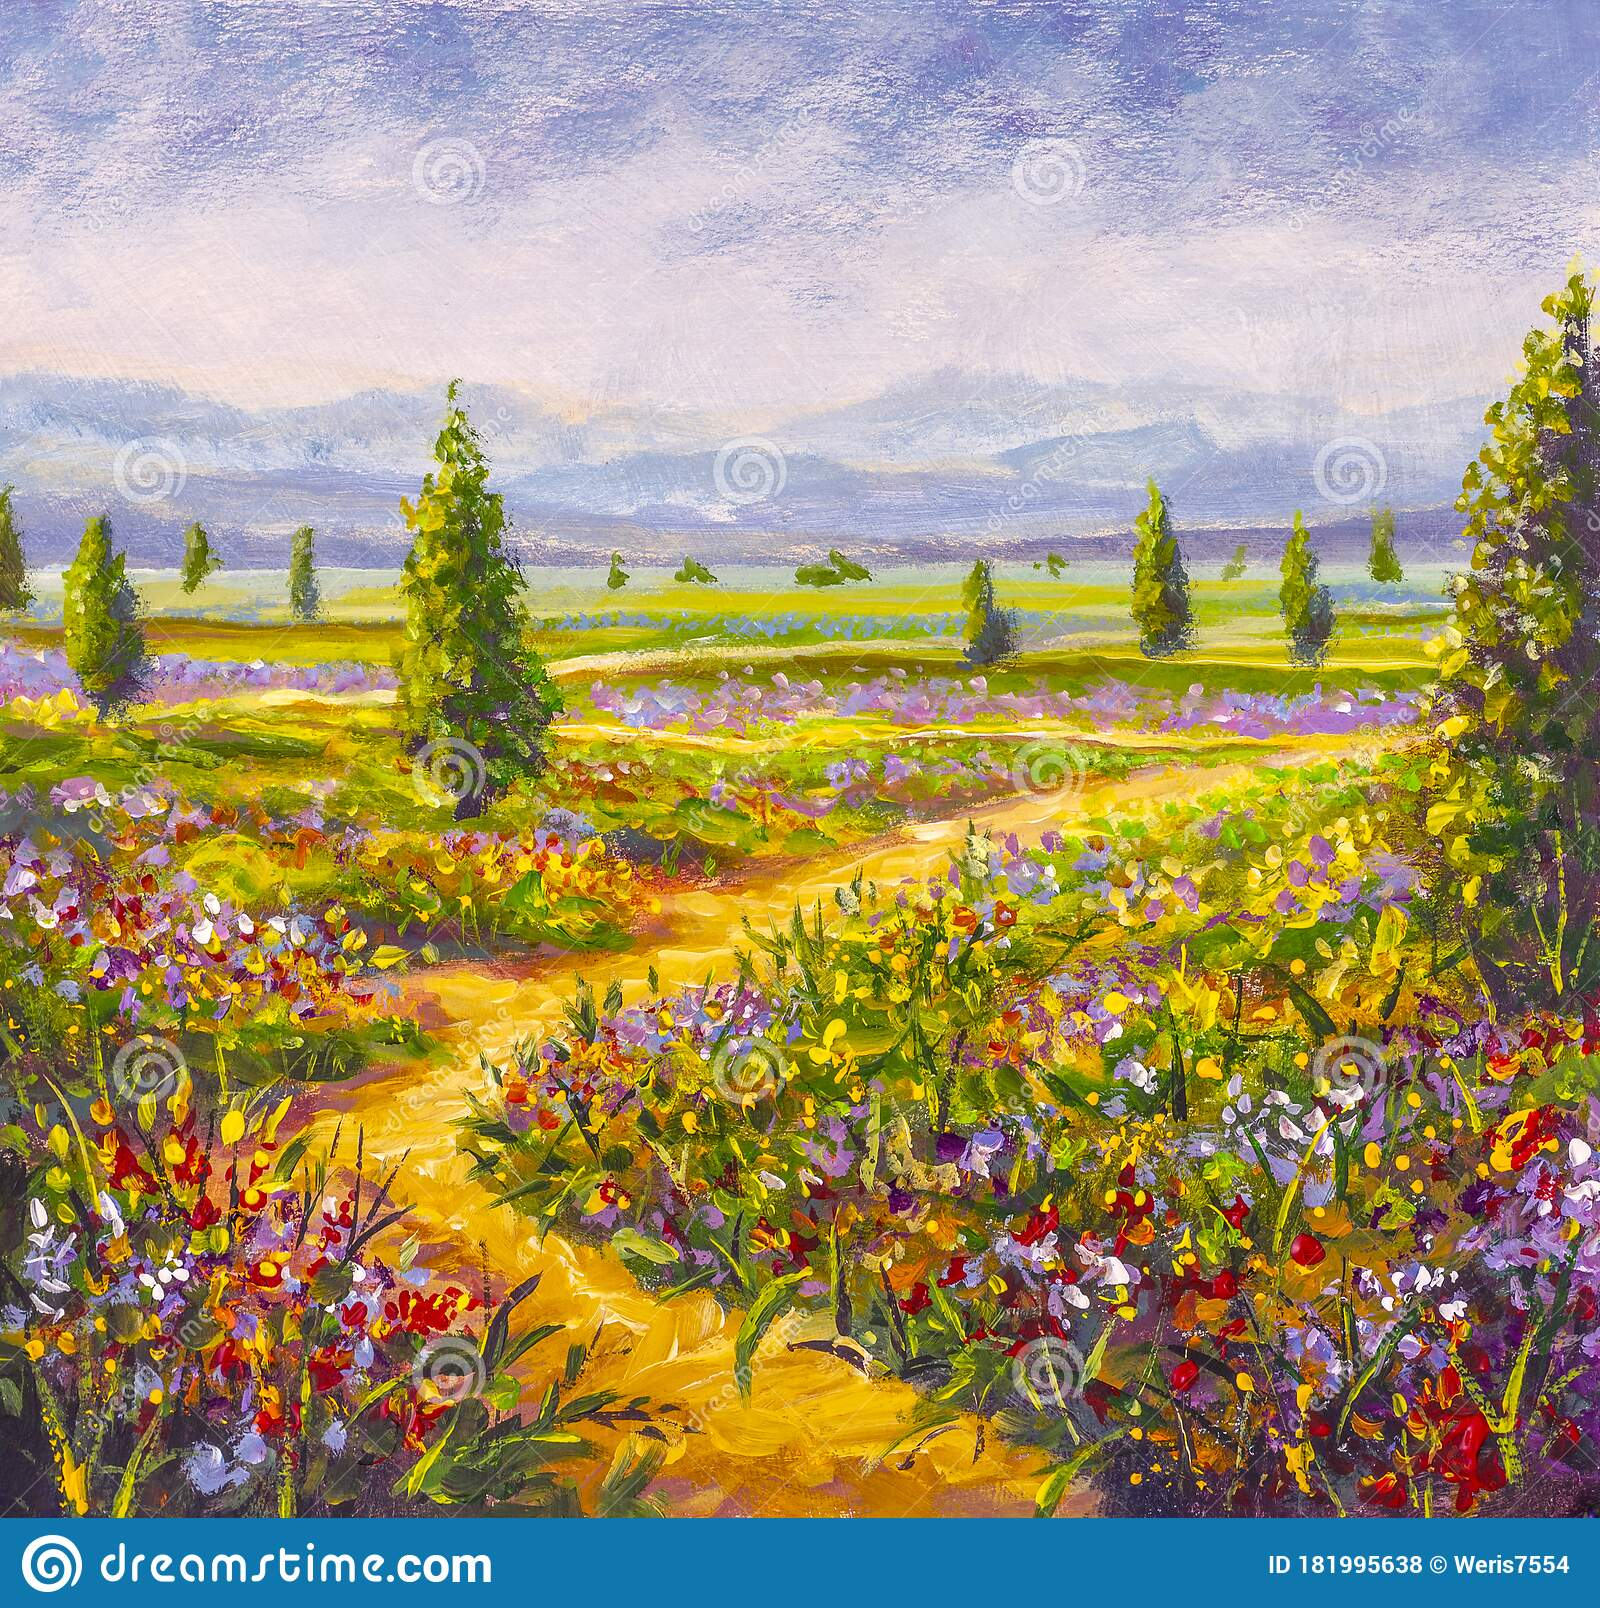 Original Oil Painting Of Country Road In Flowers Fields Stock Photo Image Of Paint Flower 181995638